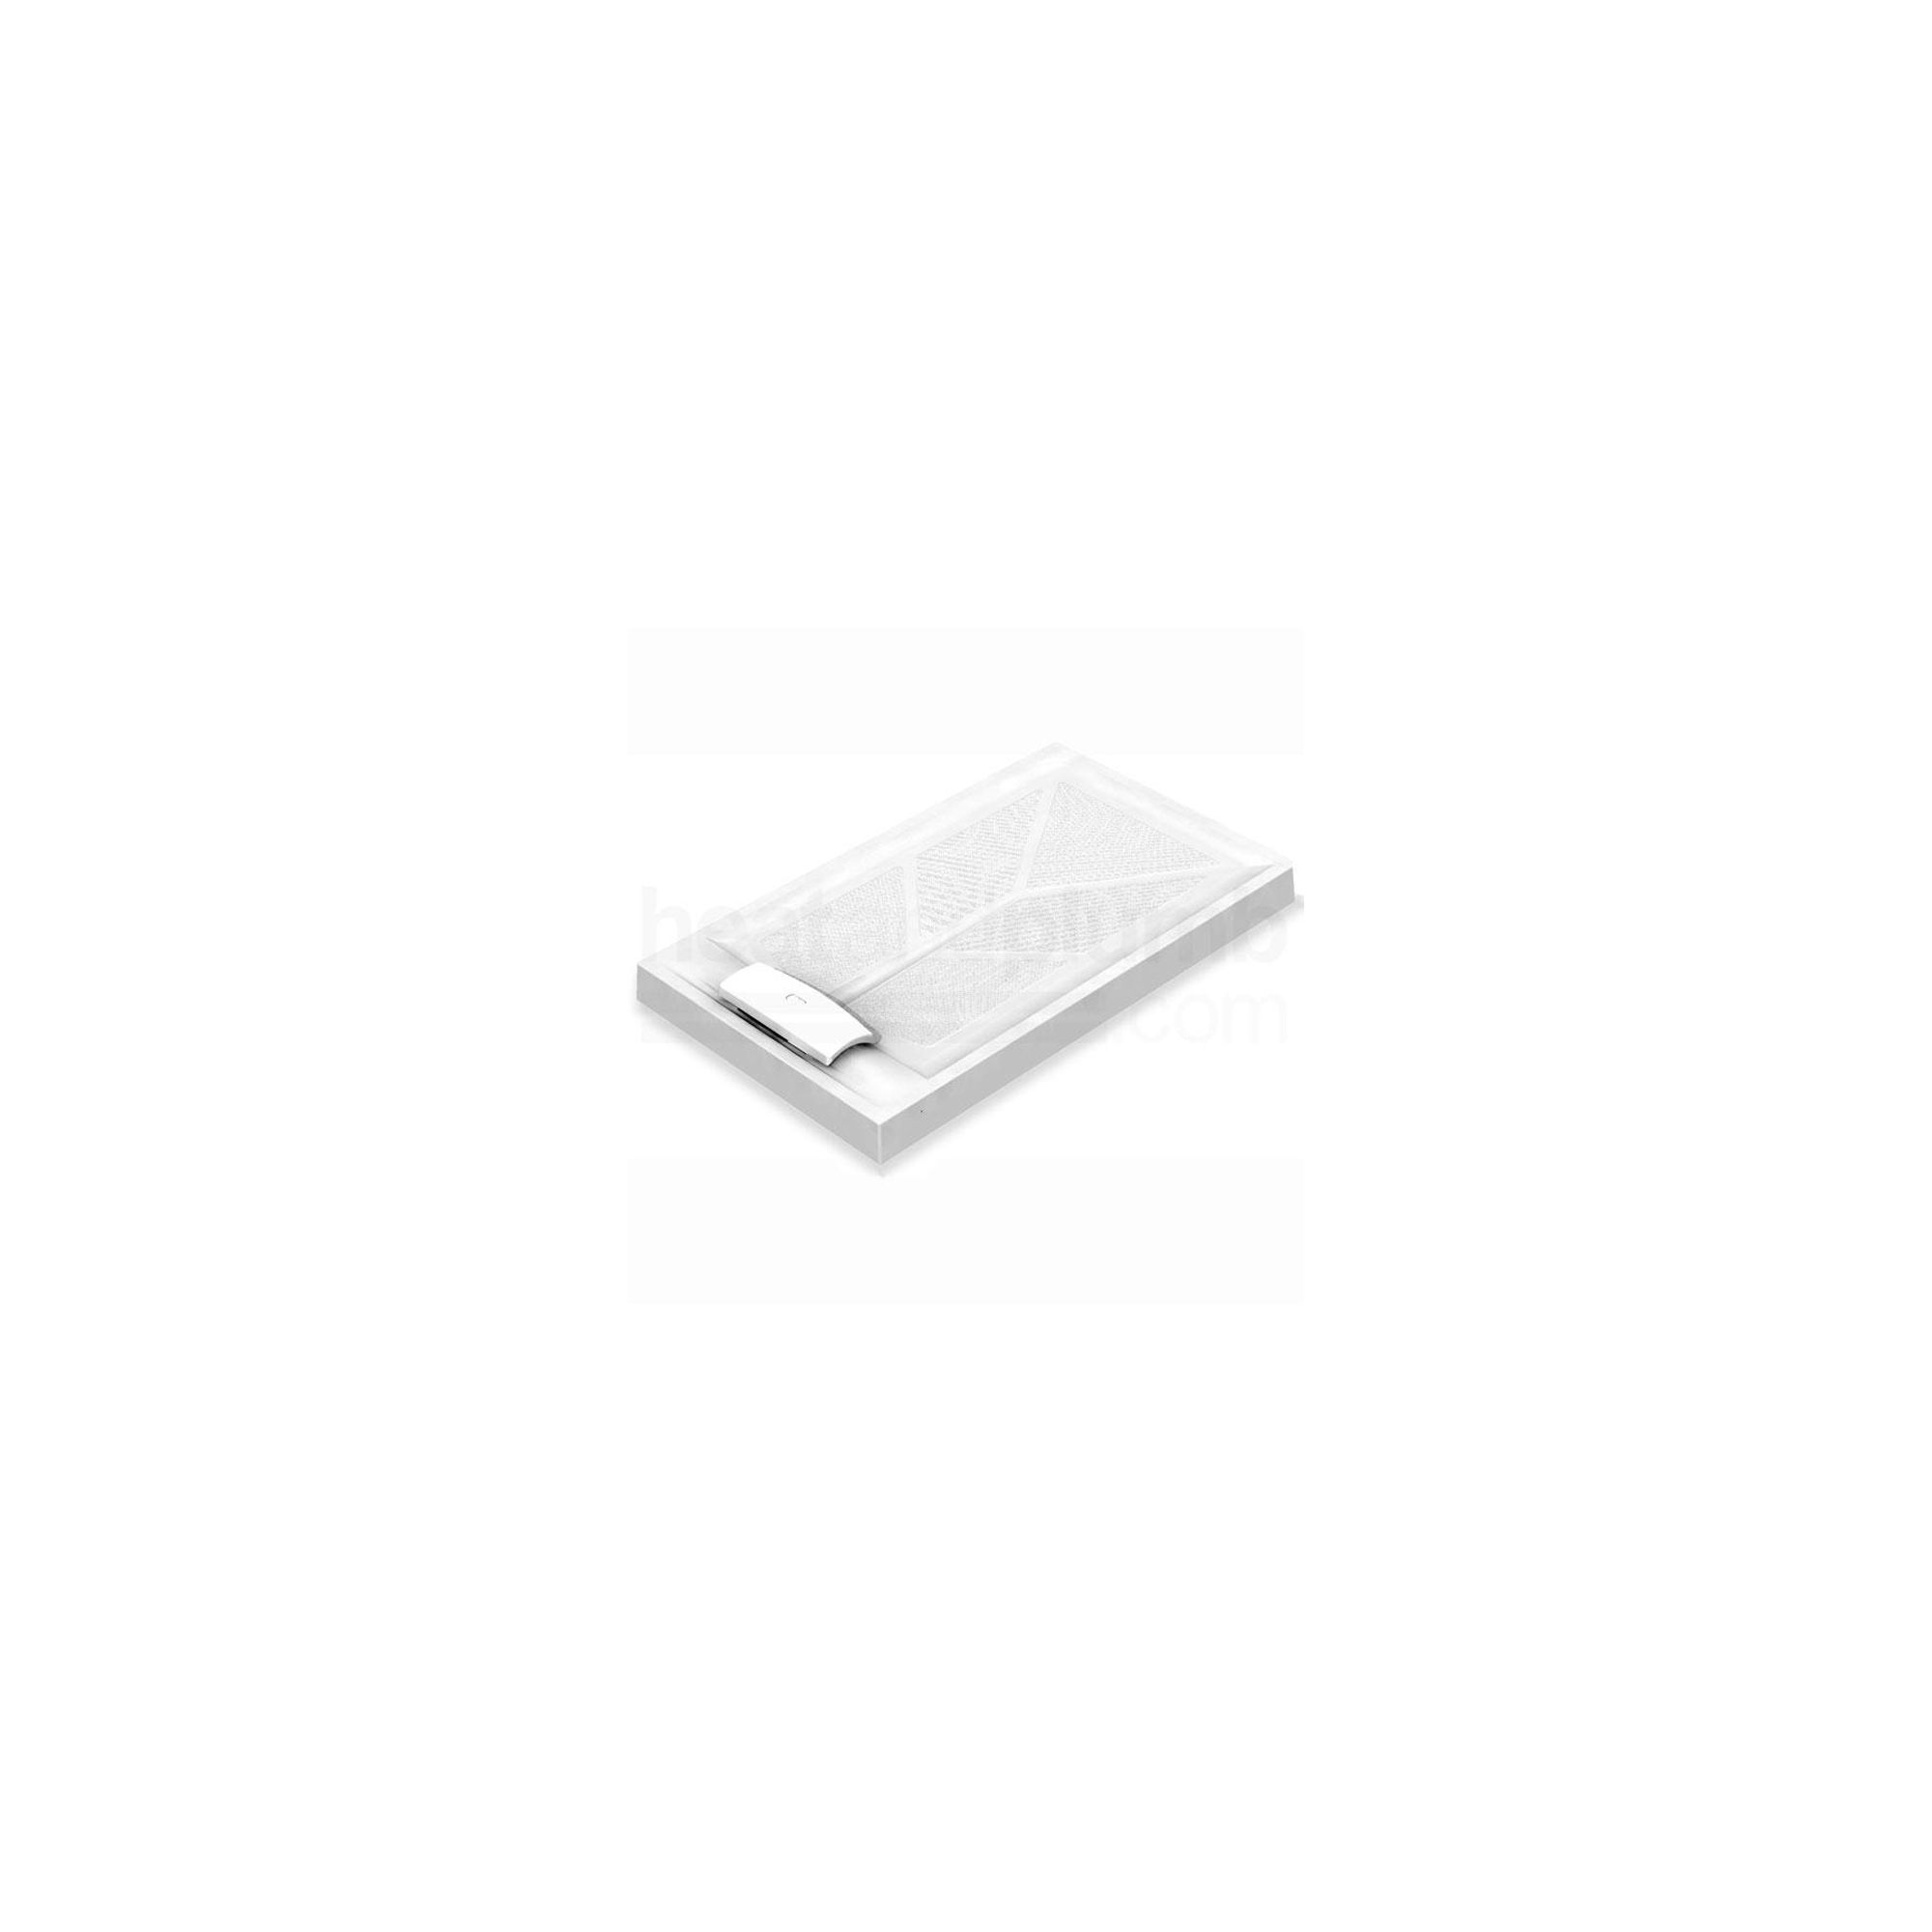 AKW Sulby Rectangular Shower Tray 1420mm x 700mm x 110mm High at Tesco Direct